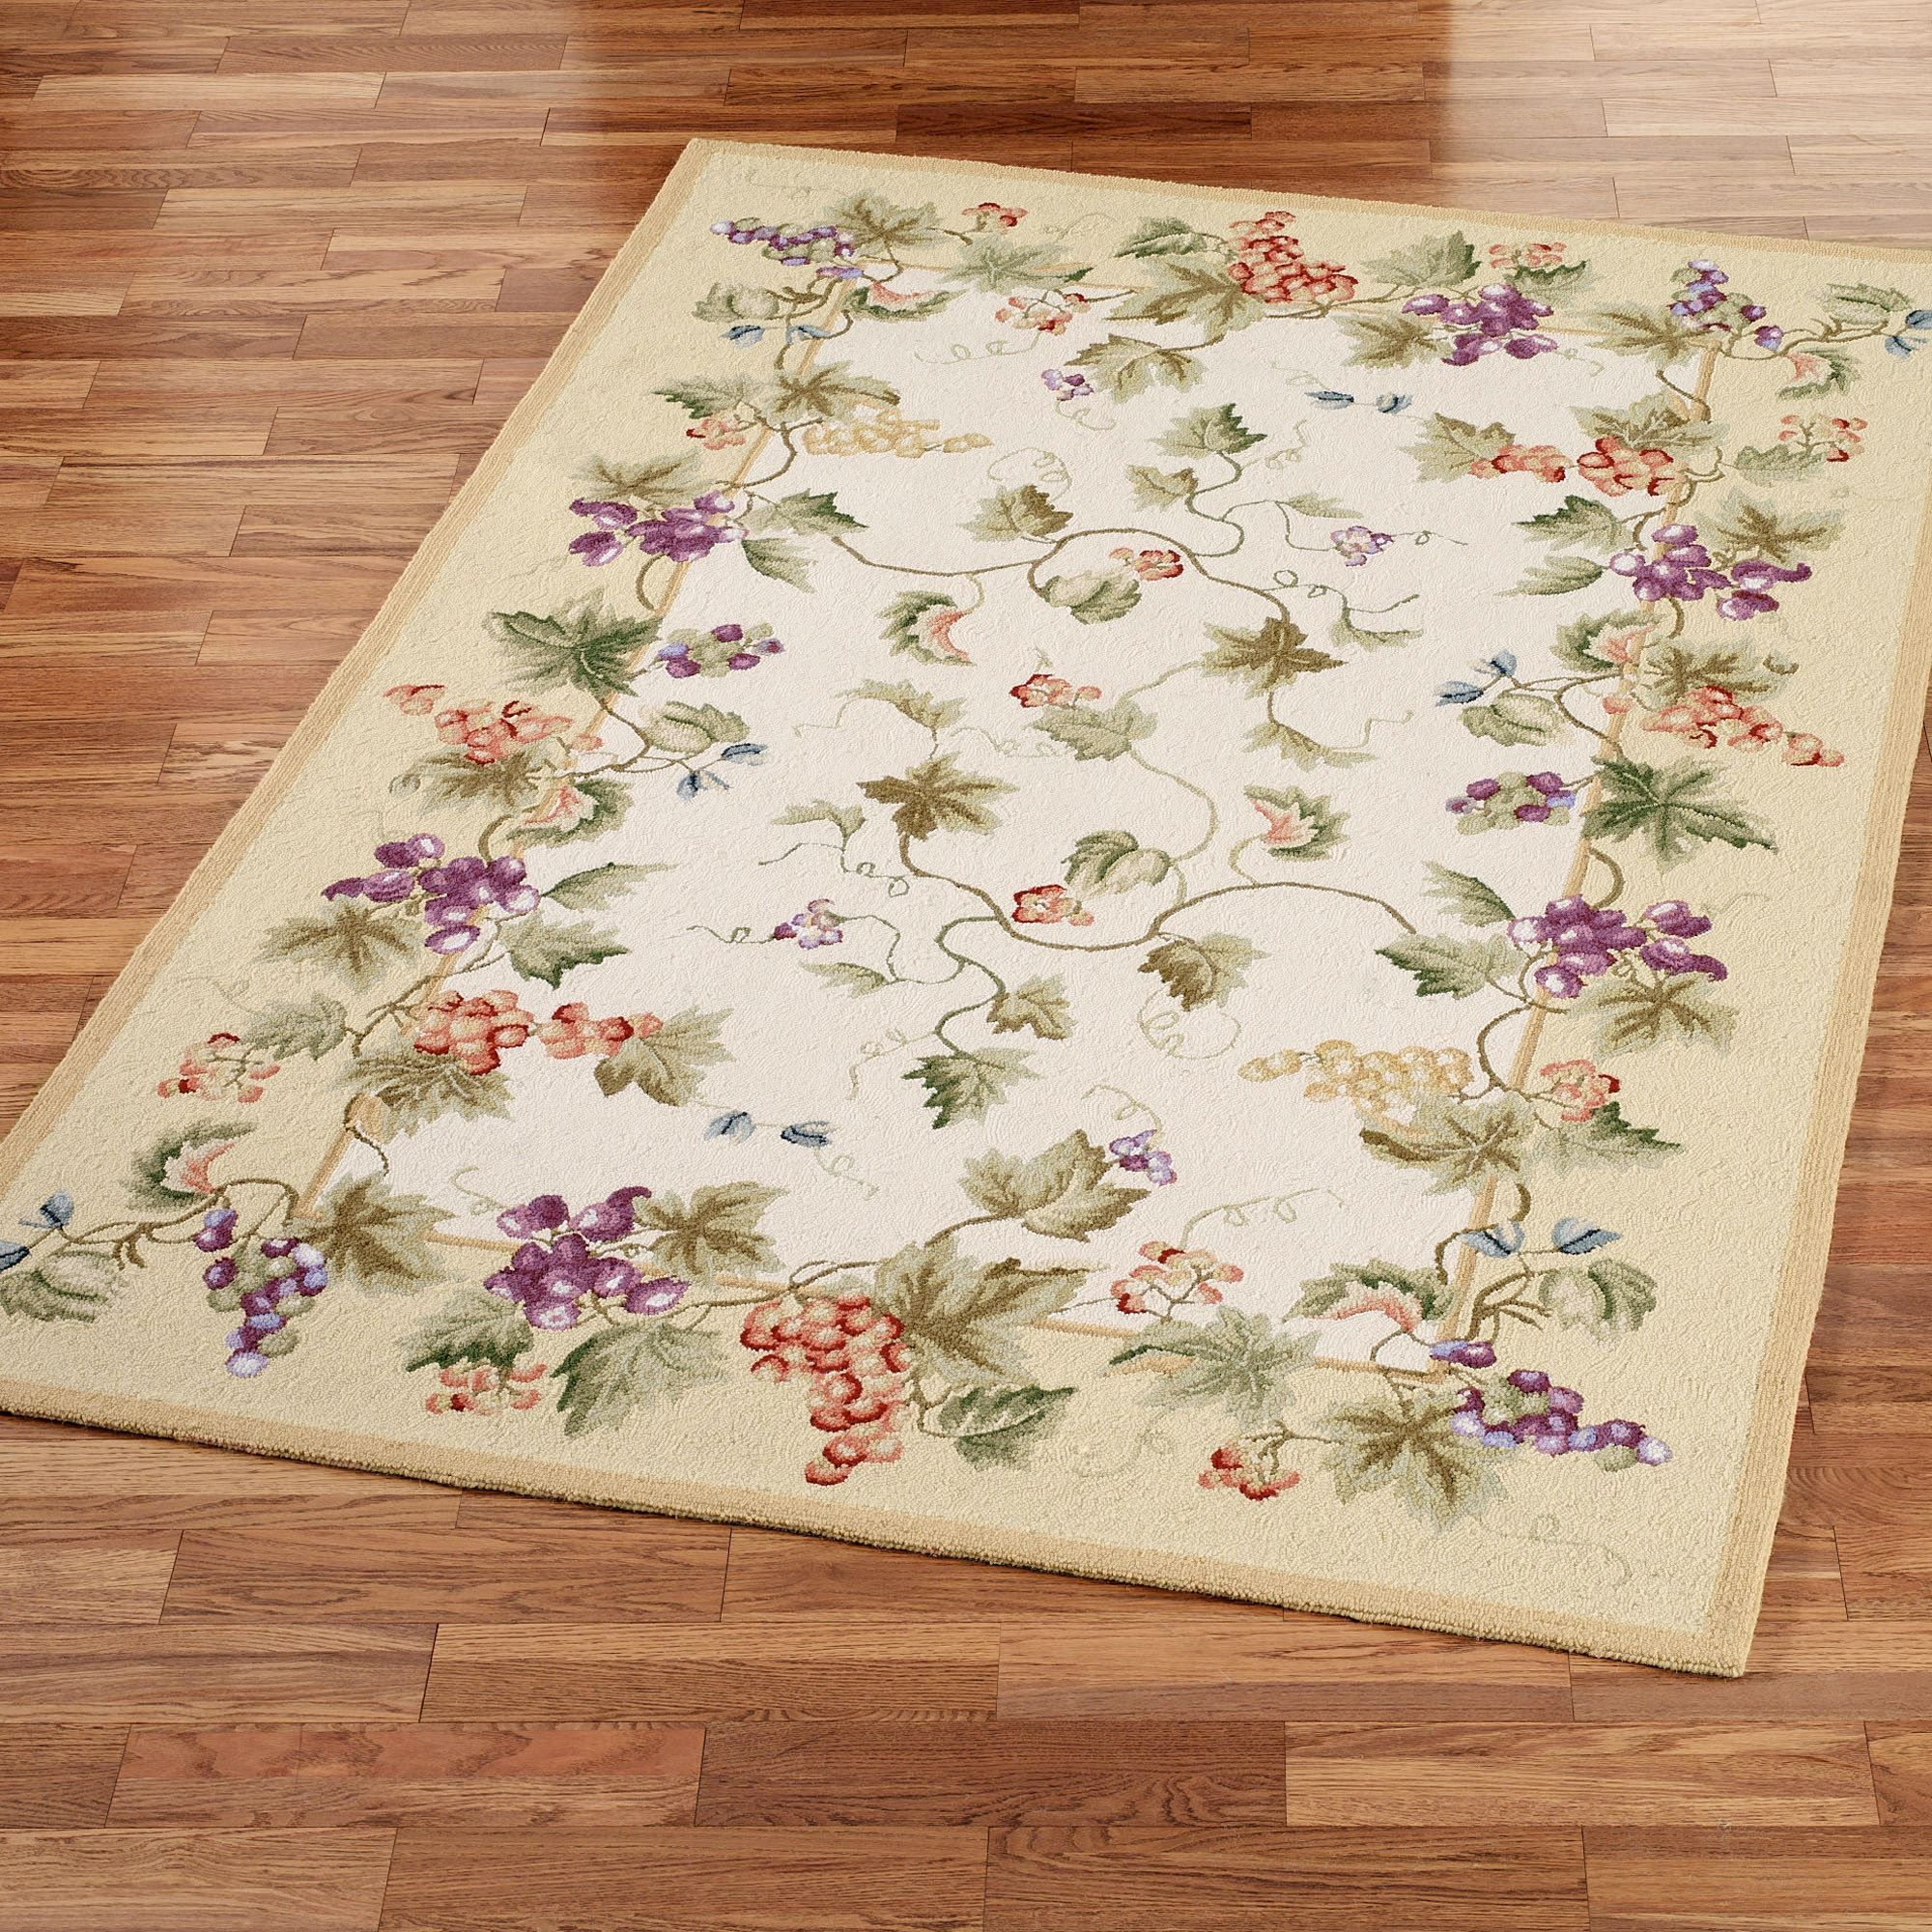 Vining Grapes Wool Area Rugs | Kitchen decor, China and Kitchens